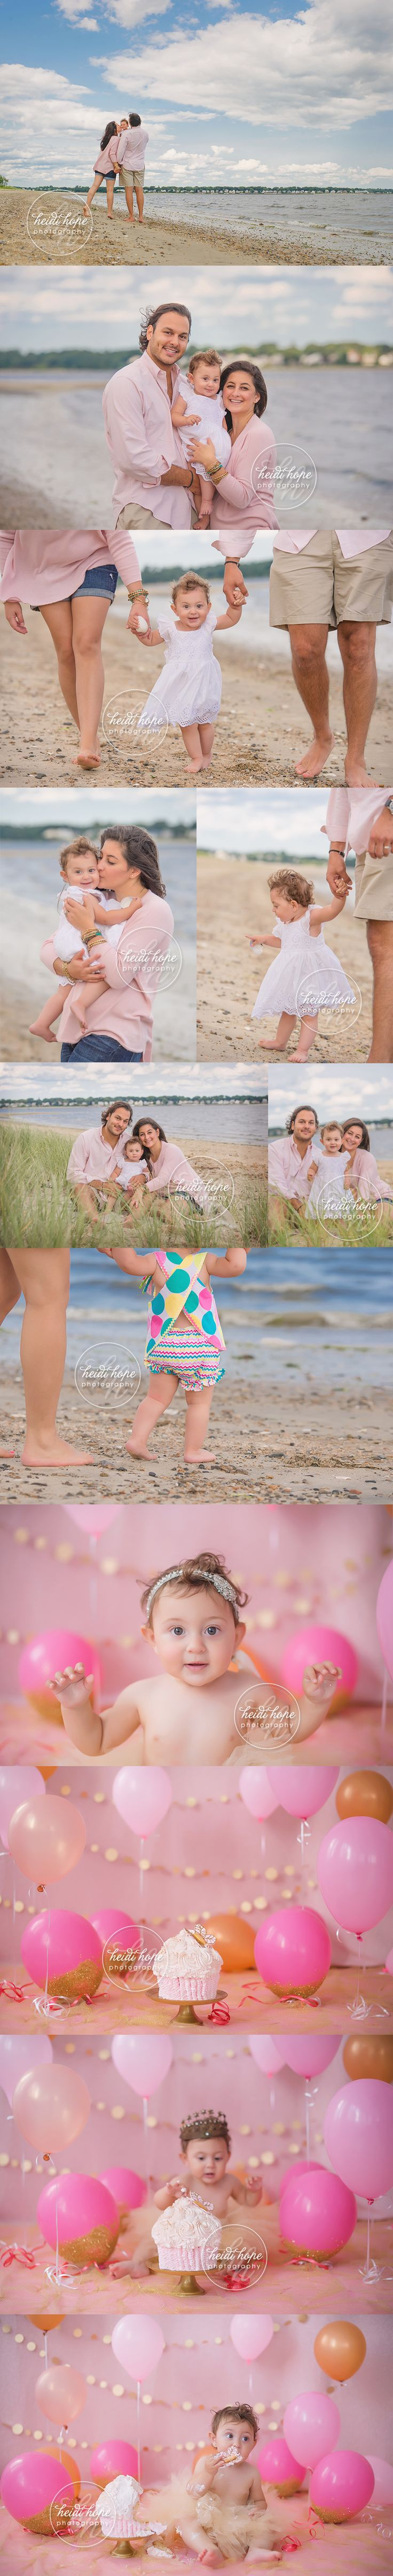 pink and gold first birthday cakesmash and outdoor family beach portraits